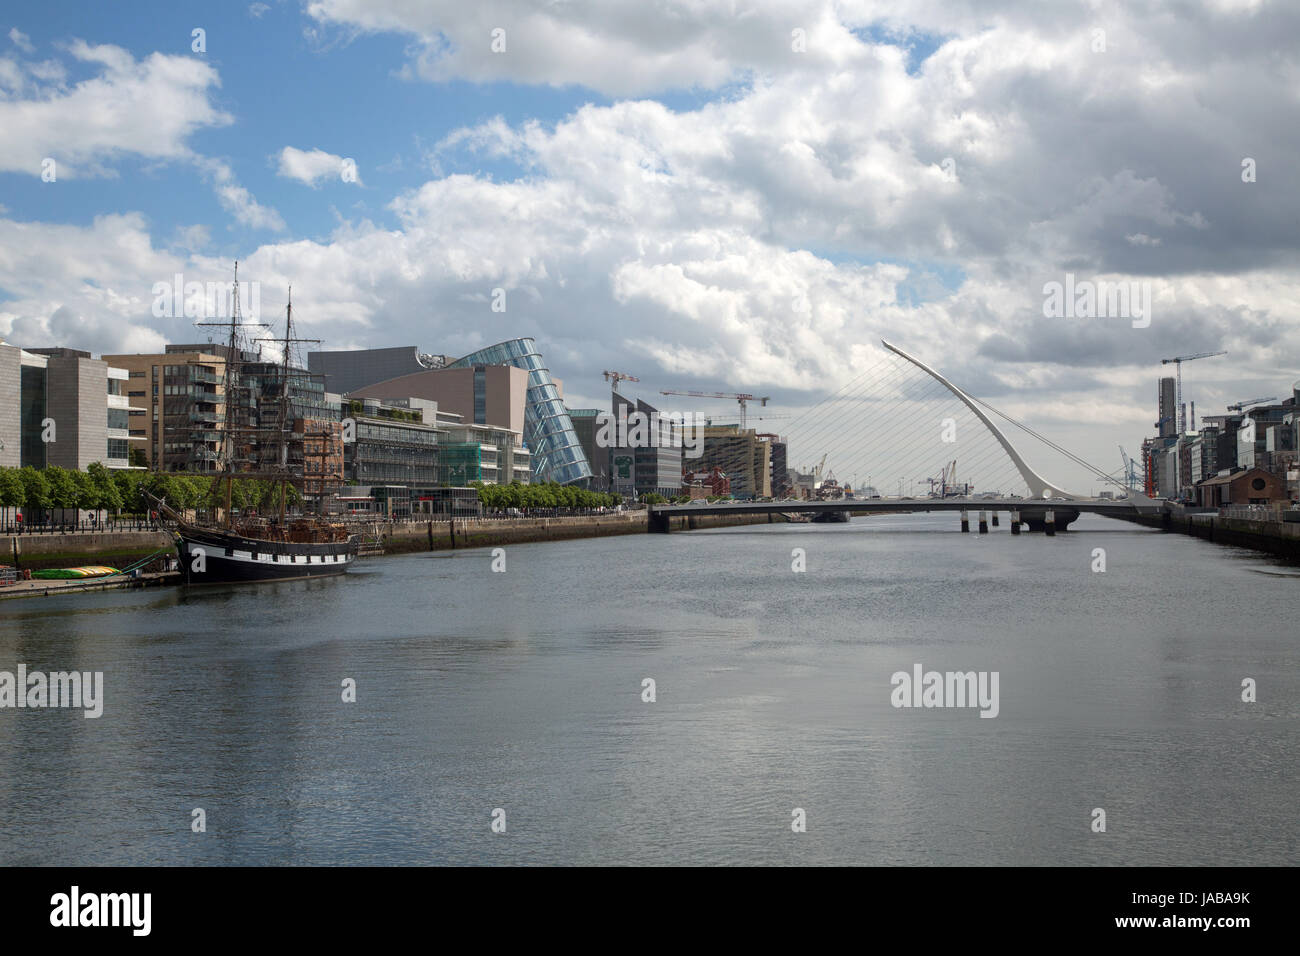 A view of the River Liffey and Dublin docklands area in Dublin city, Ireland - Stock Image